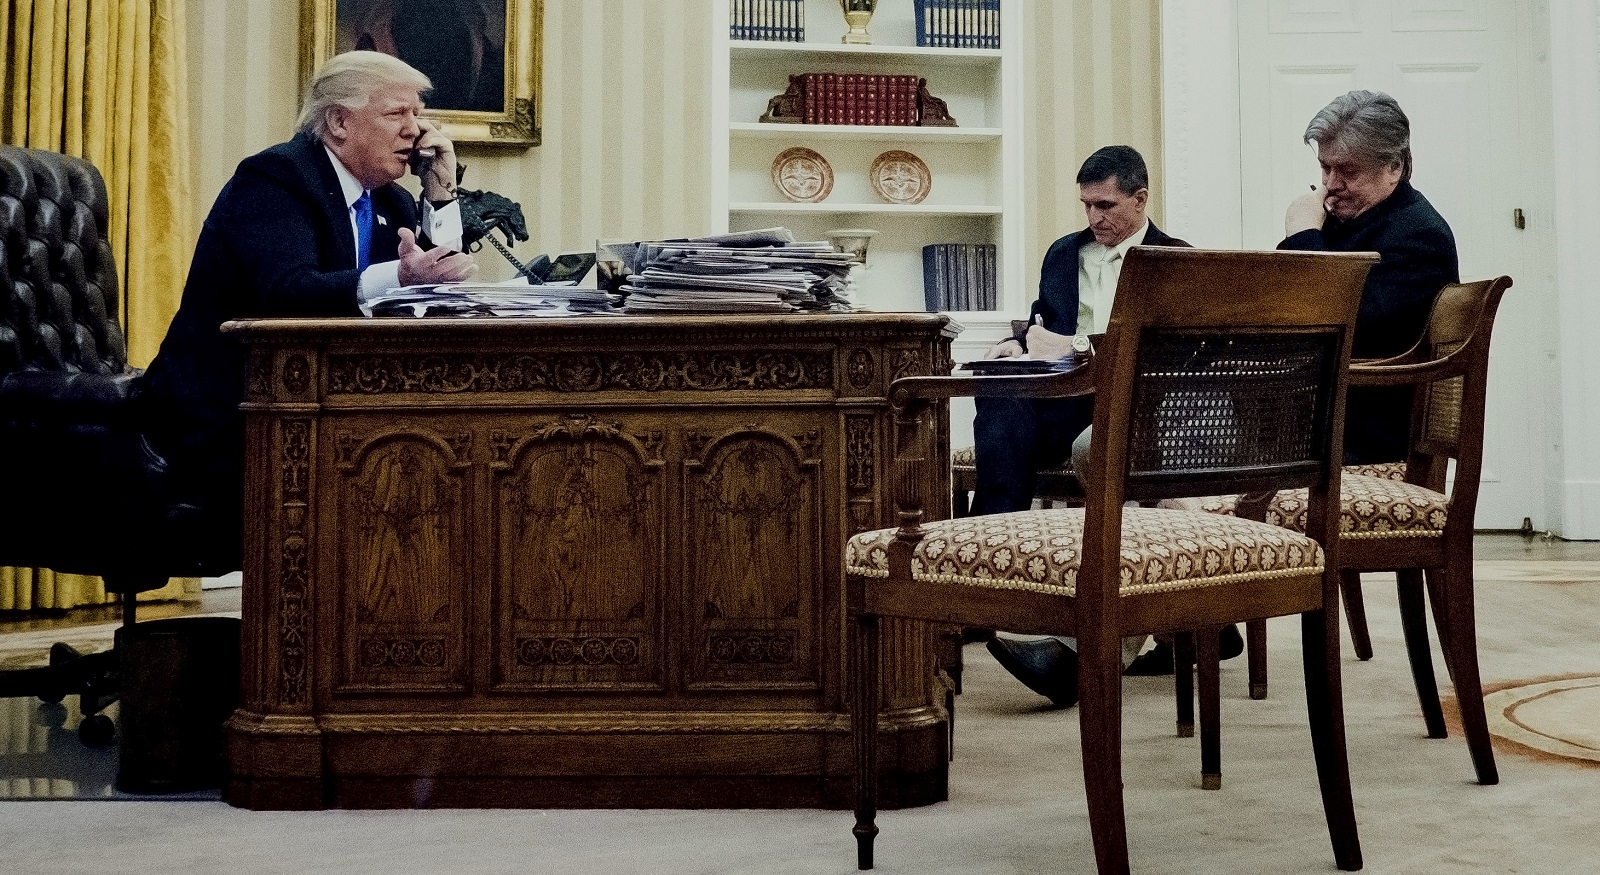 US President Donald Trump on the phone with Malcolm Turnbull on 28 January. (Photo: Pete Marovich/Getty Images)